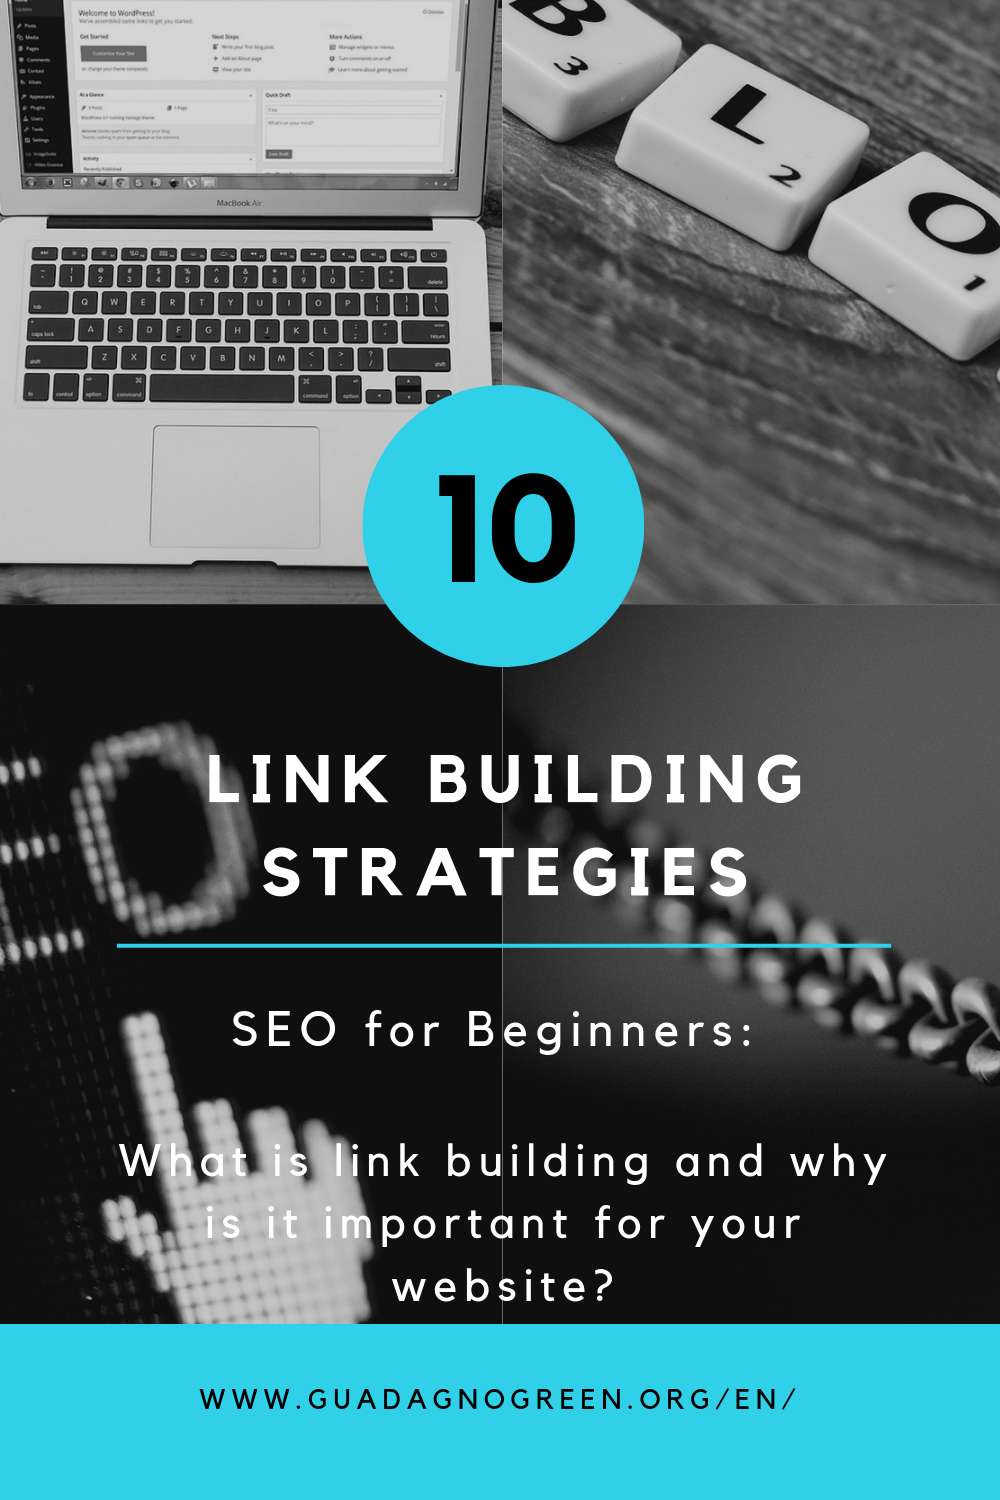 seo-for-beginners-how-to-do-link-building